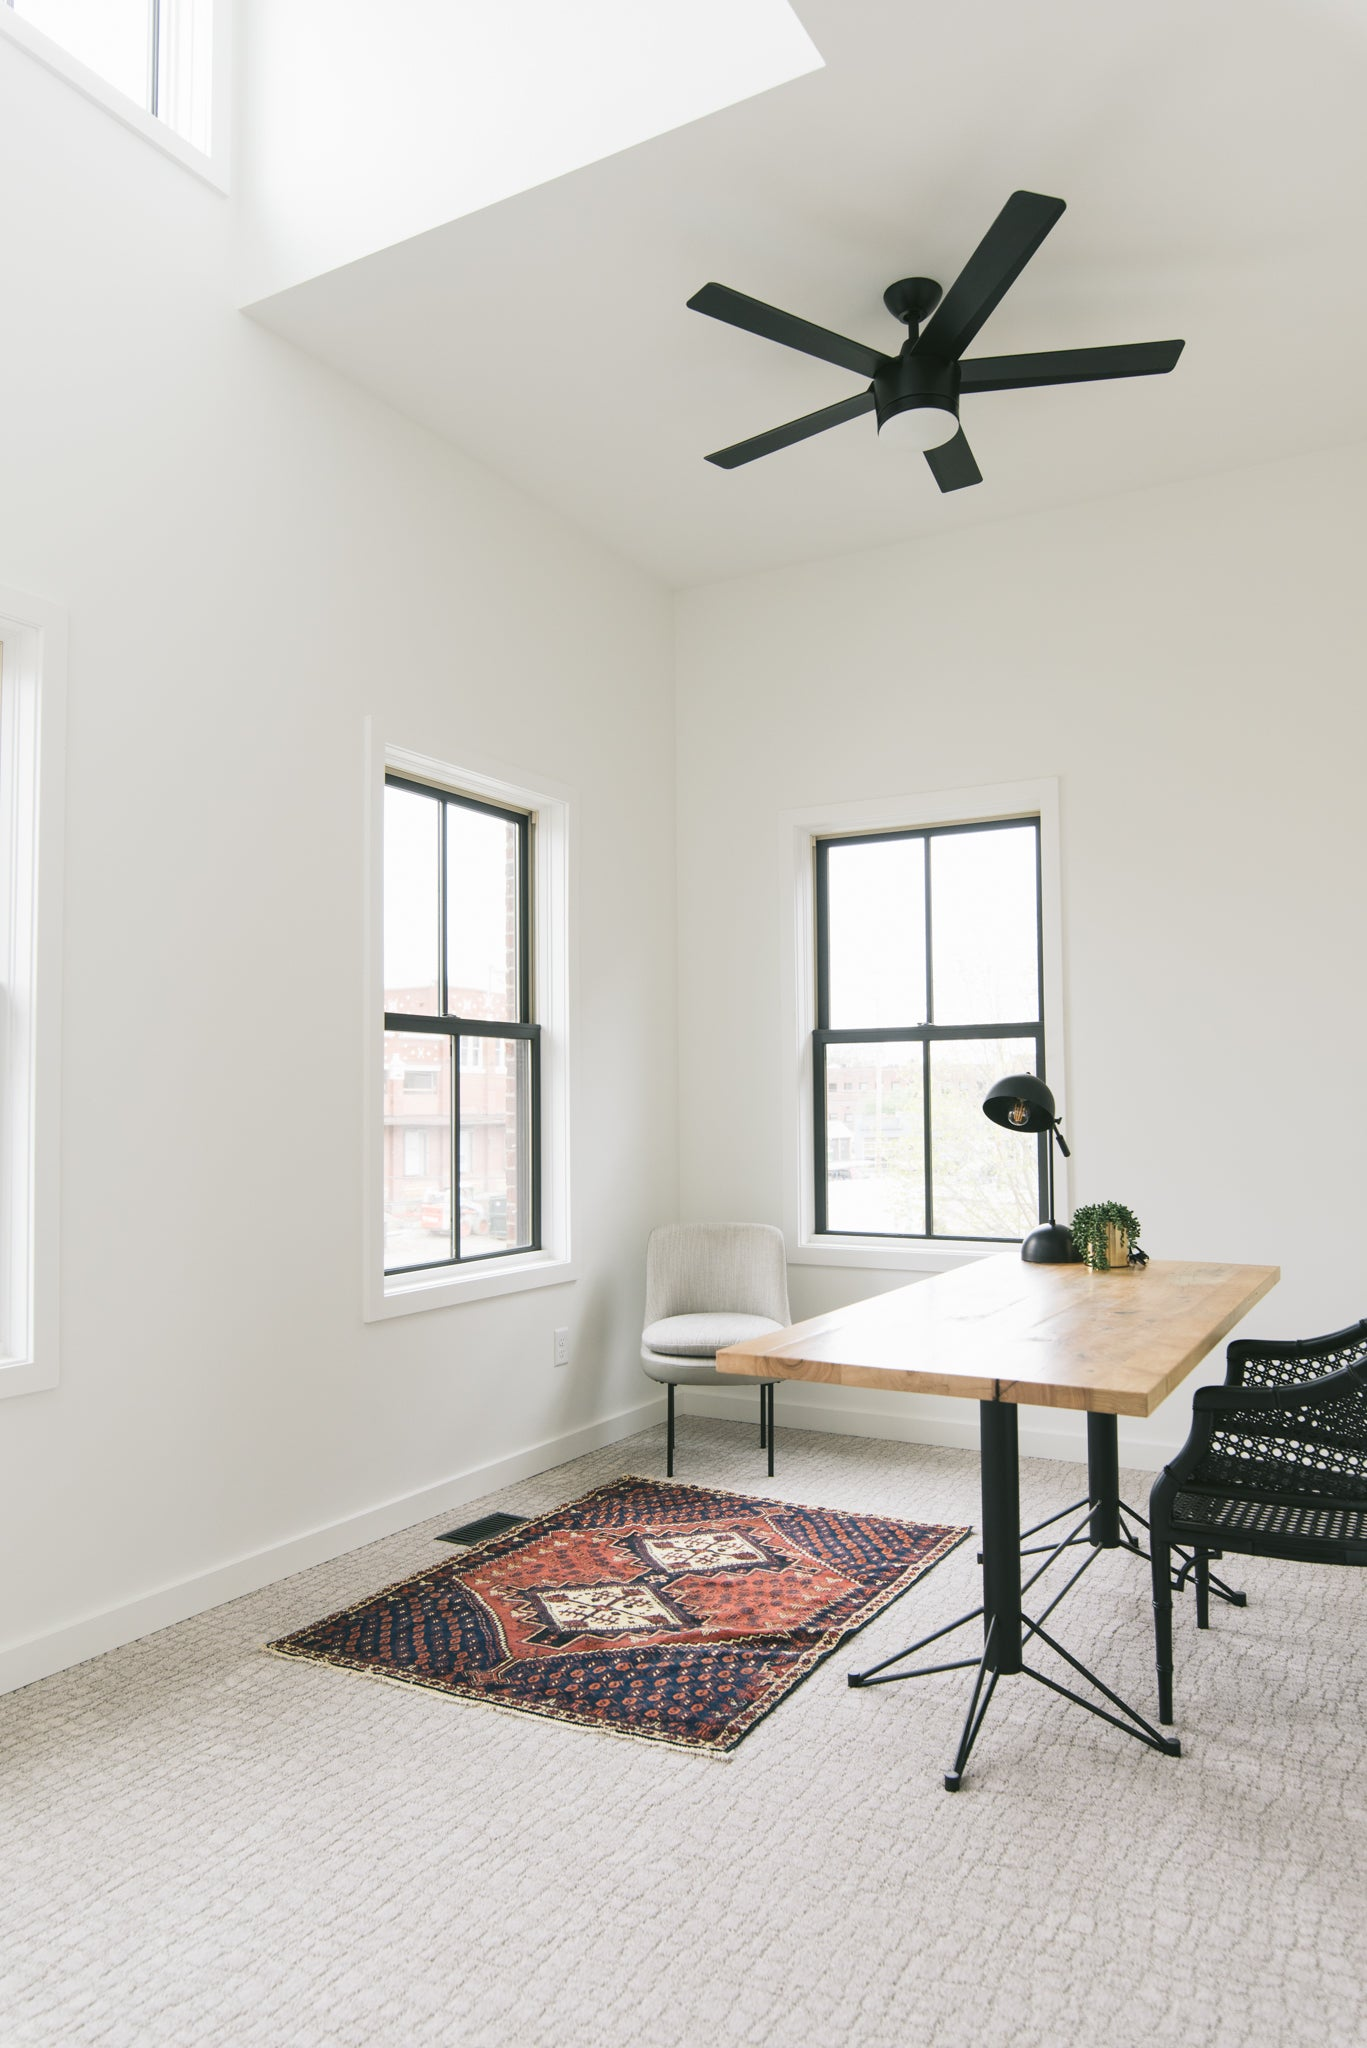 The newly built upstairs office featuring a wood drafting table desk, black caned chair, pale gray carpet, and white walls. A vintage diamond pattern rug with red and blue coloring ties the room together.